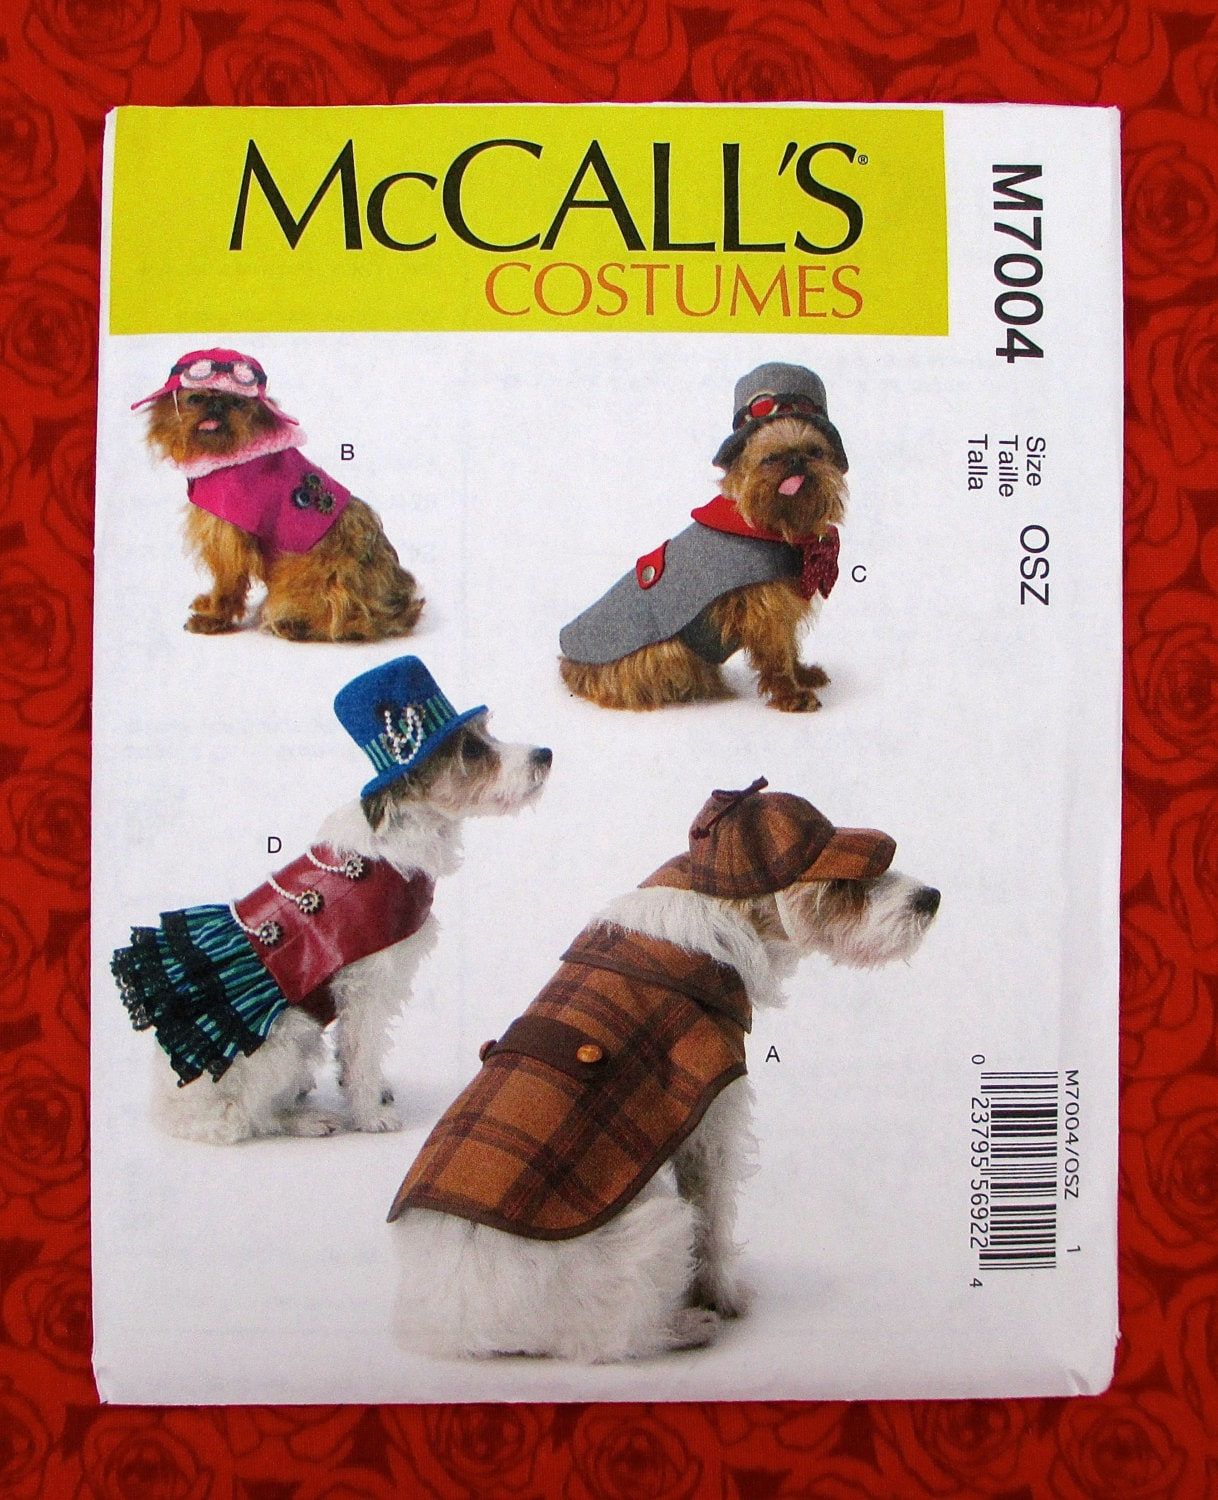 Mccalls sewing pattern m7004 dog costumes top hat coat zoom jeuxipadfo Image collections